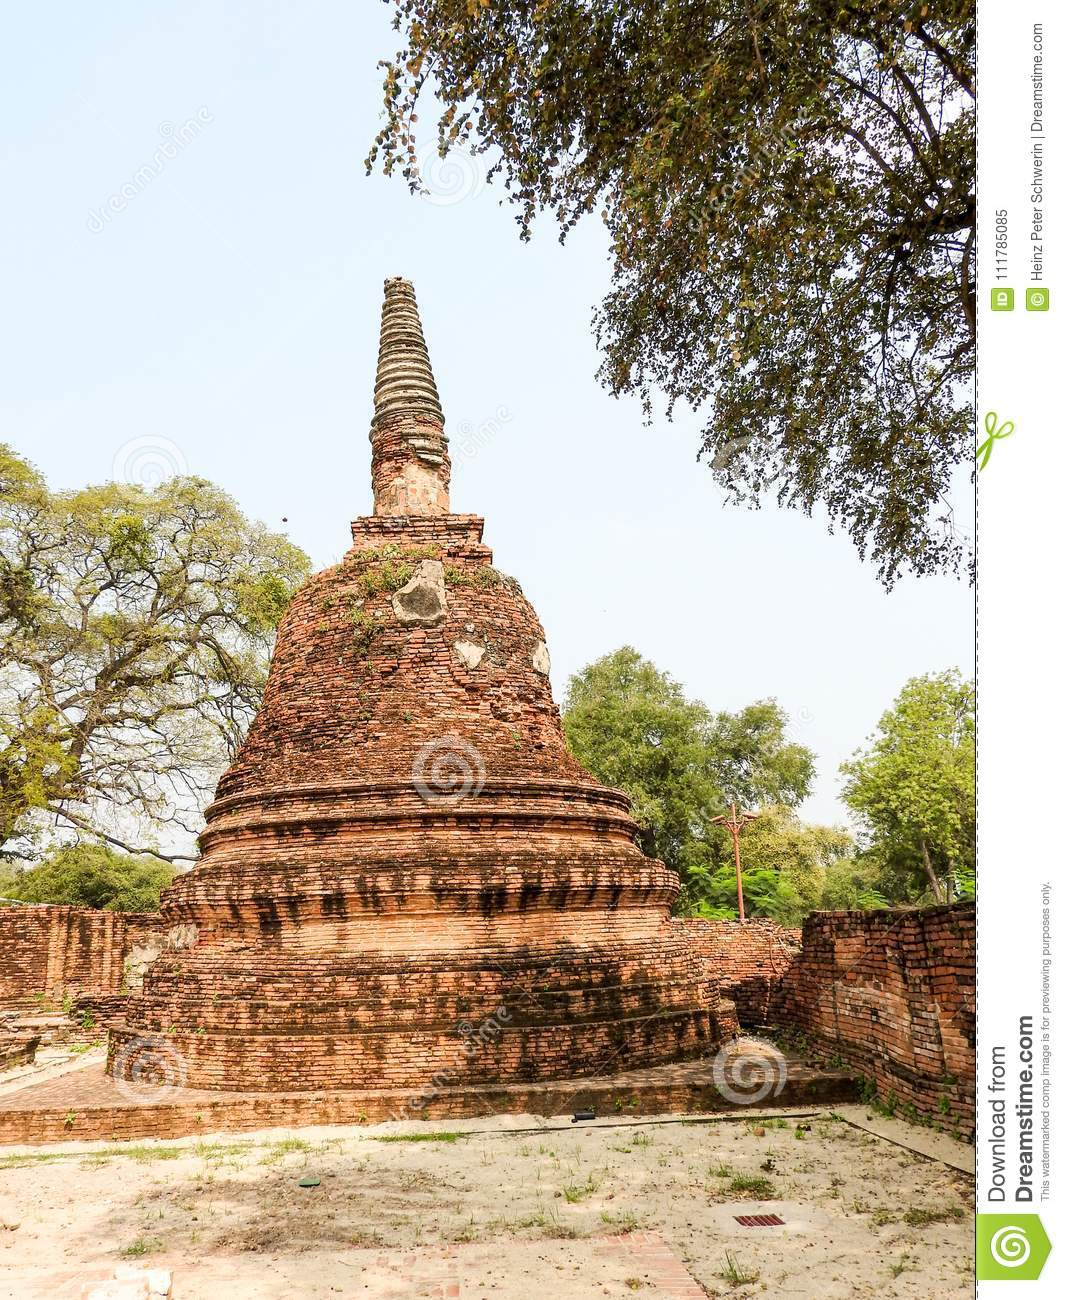 Ayutthaya former capital of the Kingdom of Siam